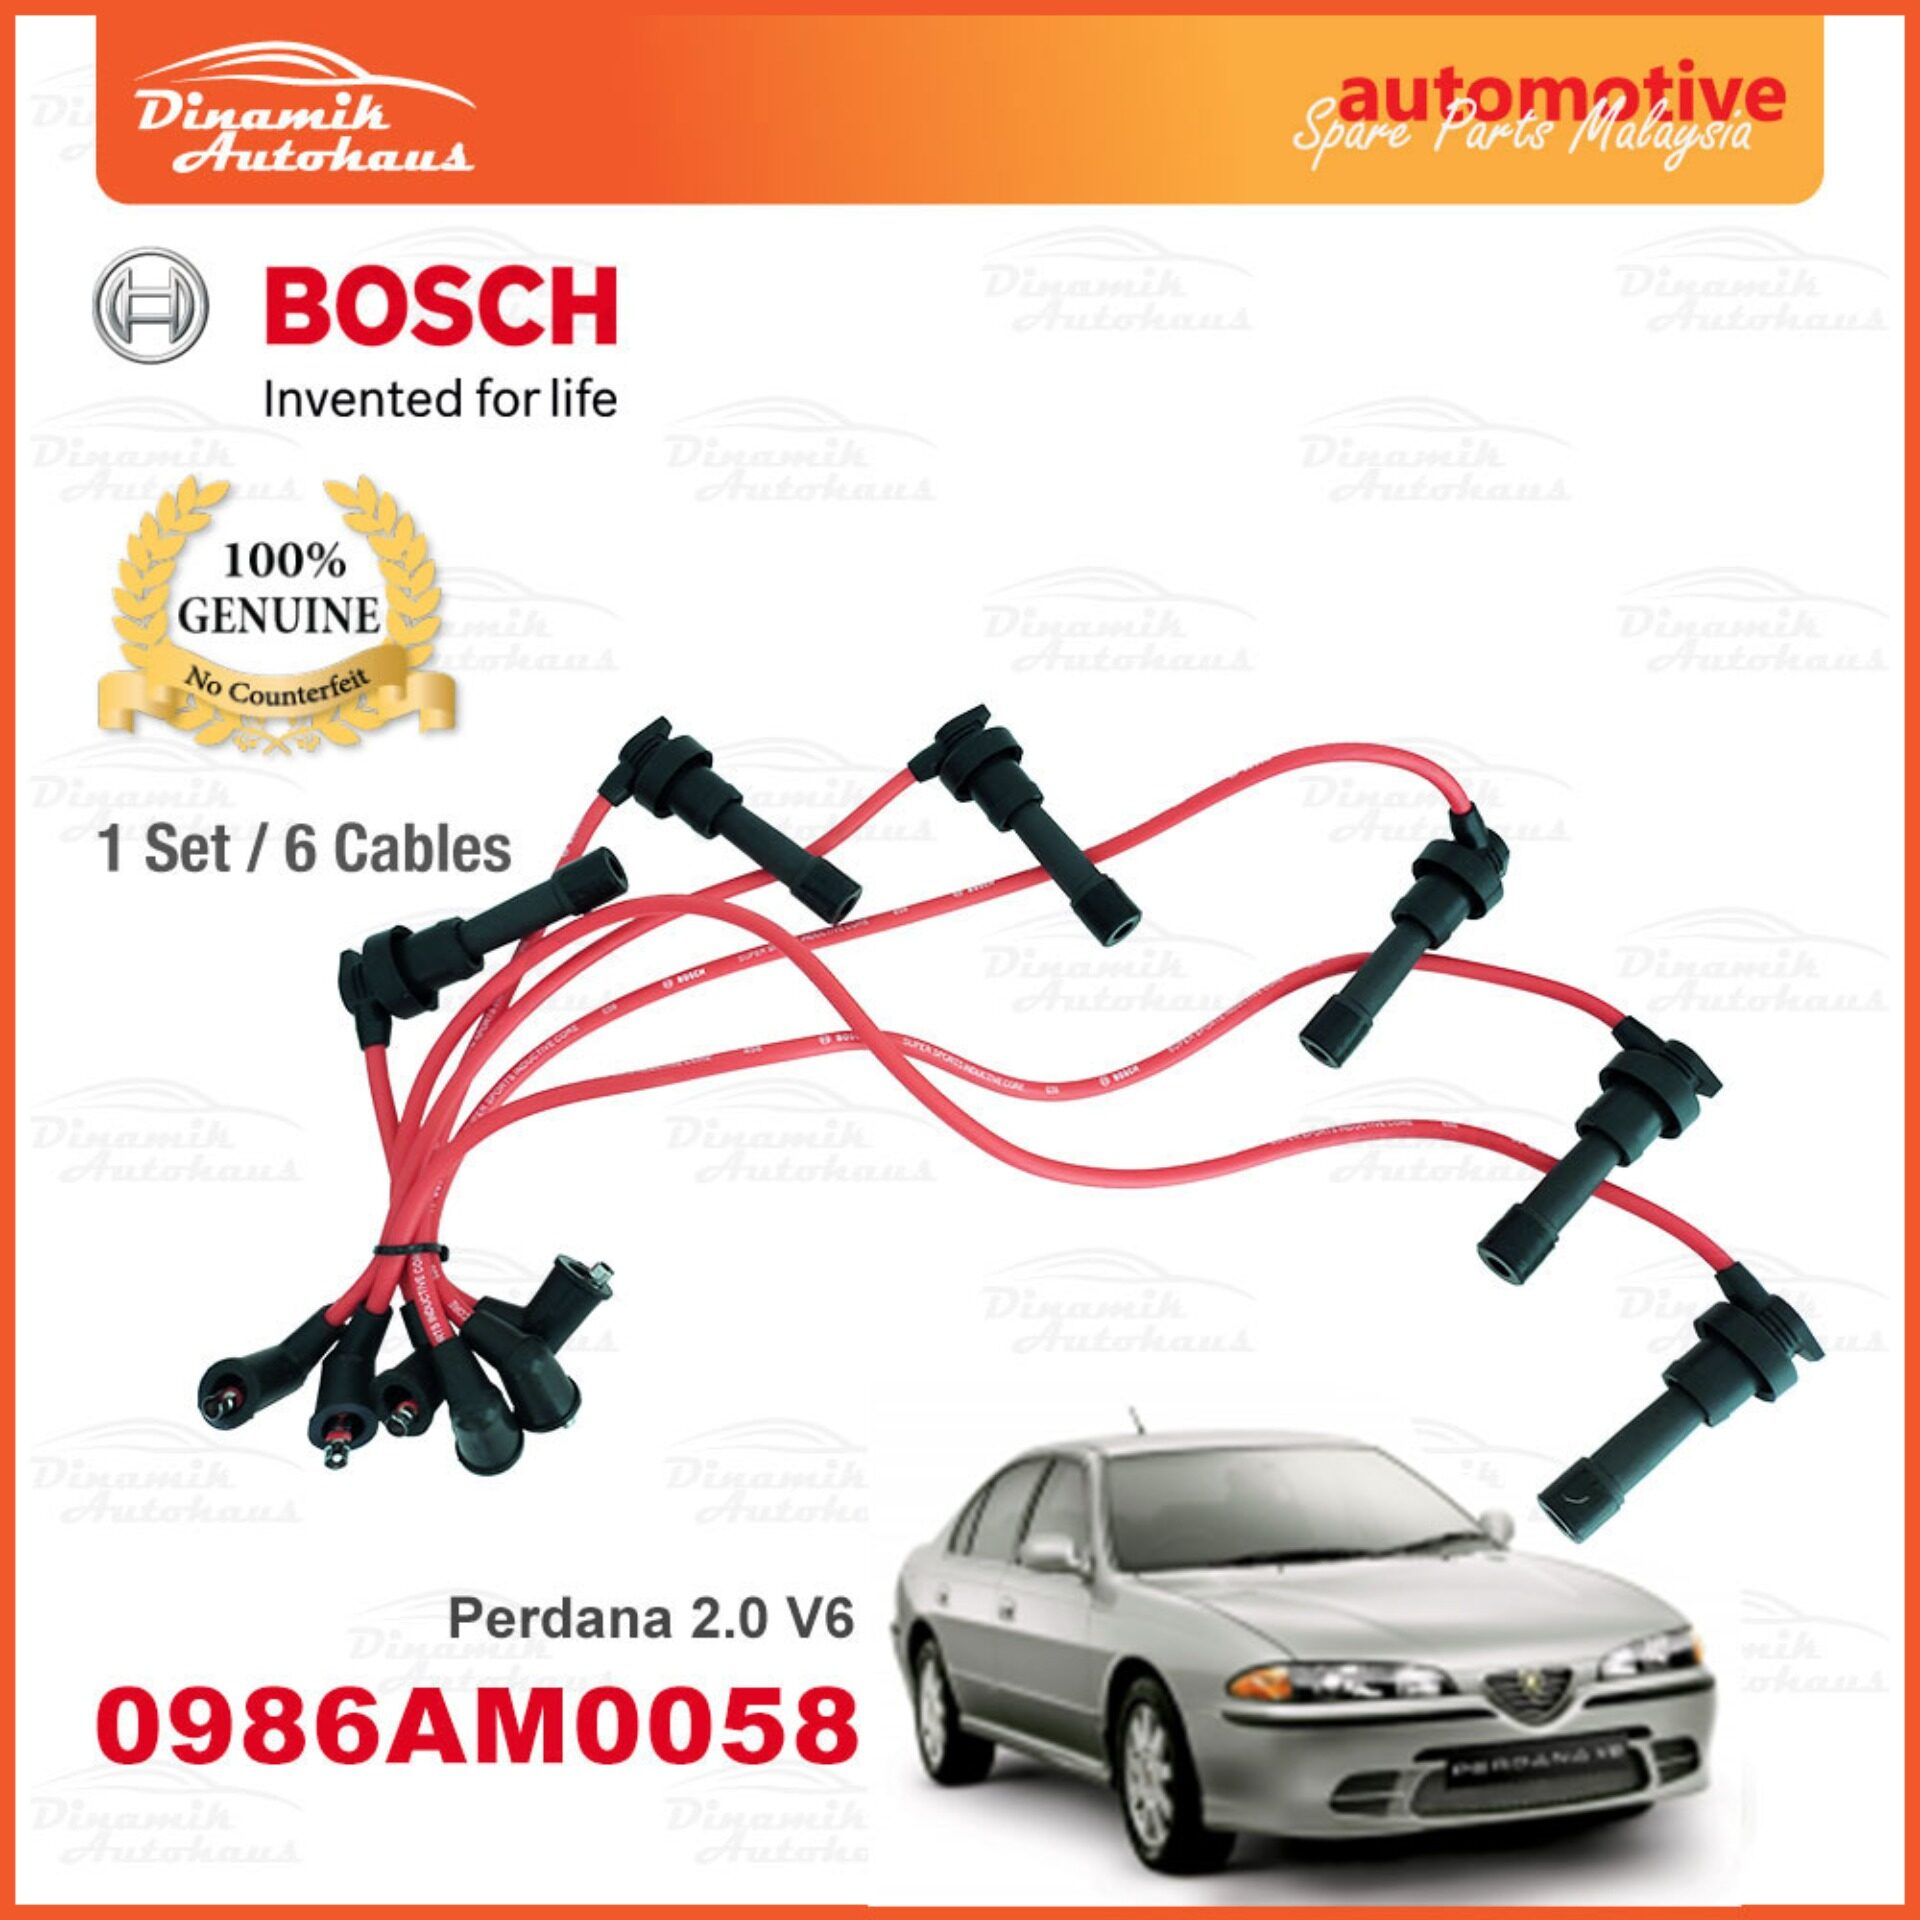 Proton Perdana 2.0 V6 Ignition Leads Plug Cable Bosch M058